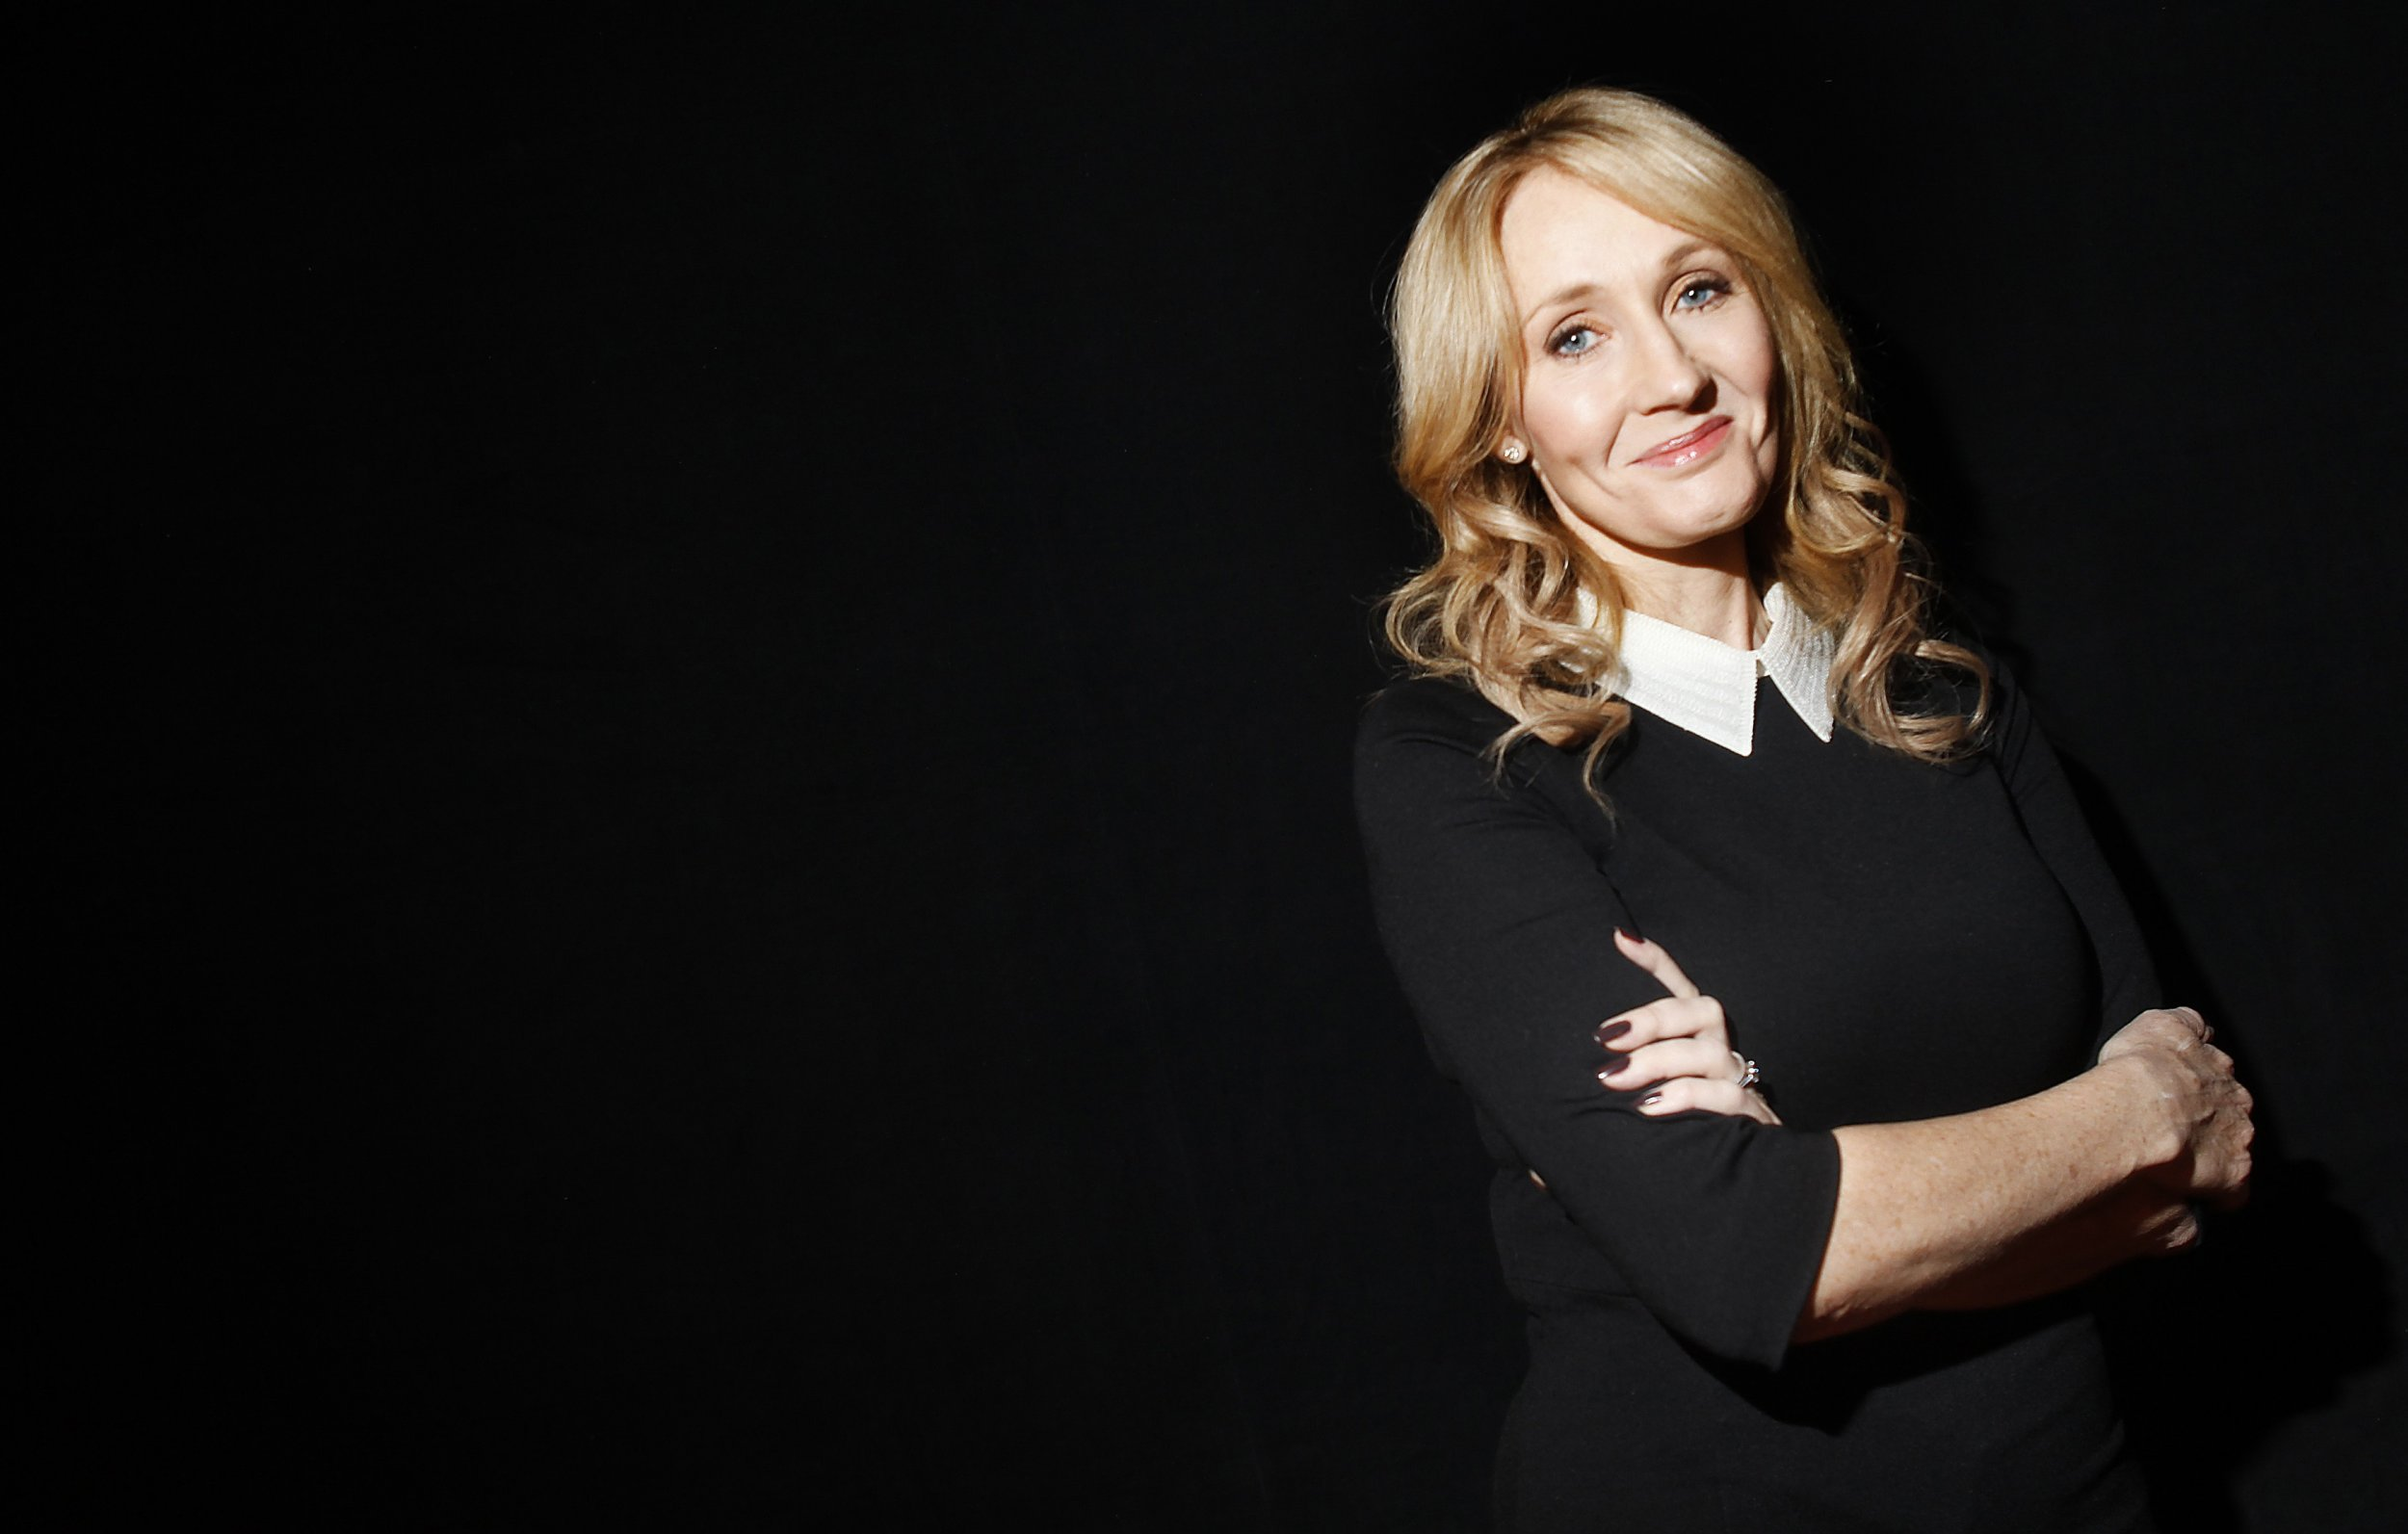 J.</br></br>But,,as,,she,,told,,this,,BBC,,Television,,interviewer,,,her,,publishers,,advised,,her,,against,,putting,,Joanne,,Rowling,,on,,the,,book,,jacketHarry,,,Potter,,,filmsAuthority,,,control,,,WorldCat,,,Identities,,,VIAF:,,,116796842,,,LCCN:,,,n97108433,,,ISNI:,,,0000,,,0001,,,2148,,,628X,,,GND:,,,122340469,,,SELIBR:,,,88158,,,SUDOC:,,,050222937,,,BNF:,,,cb135200136,,,(data),,,BIBSYS:,,,14011193,,,MusicBrainz:,,,569c0d90-28dd-413b-83e4-aaa7c27e667b,,,NLA:,,,35627515,,,NDL:,,,00765052,,,NKC:,,,jo20000071115,,,BNE:,,,XX972935,,,CiNii:,,,DA12381535,,,</br><a href=